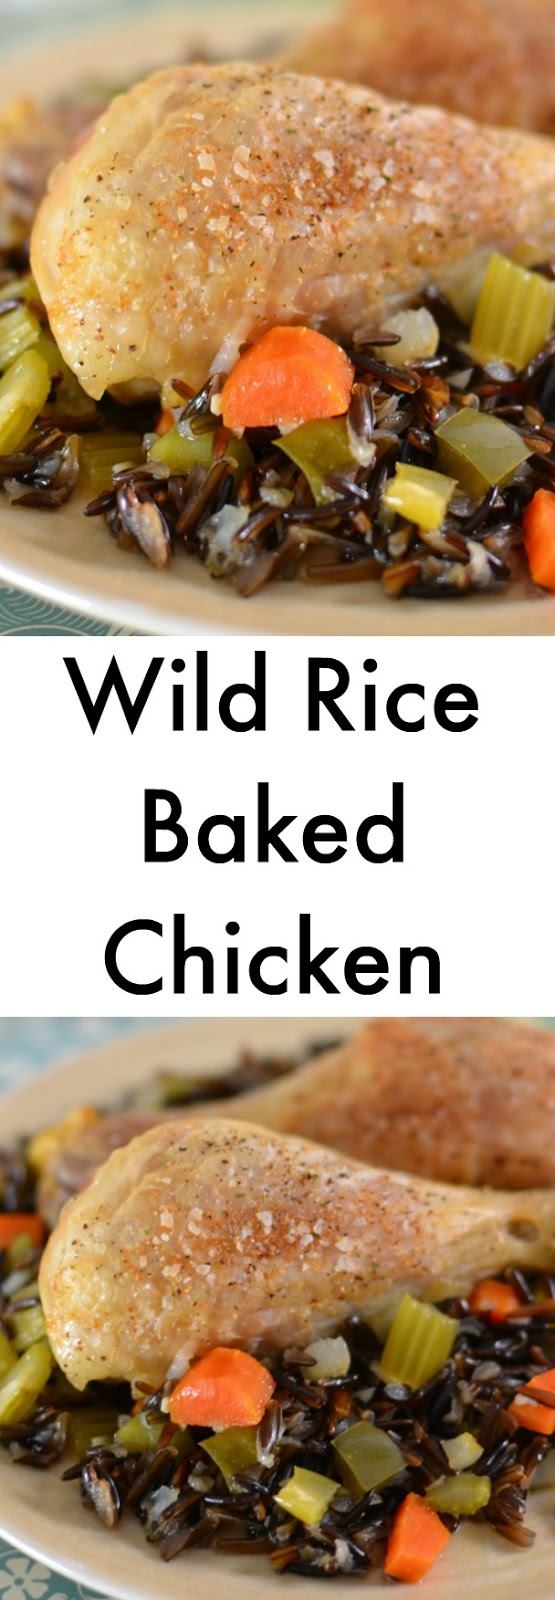 A delicious wild rice and vegetable blend including carrots, celery, green bell peppers and onions! The chicken is roasted perfectly and this recipe is healthier too since it's made with NO cream soups! Wild Rice Baked Chicken Recipe from Hot Eats and Cool Reads